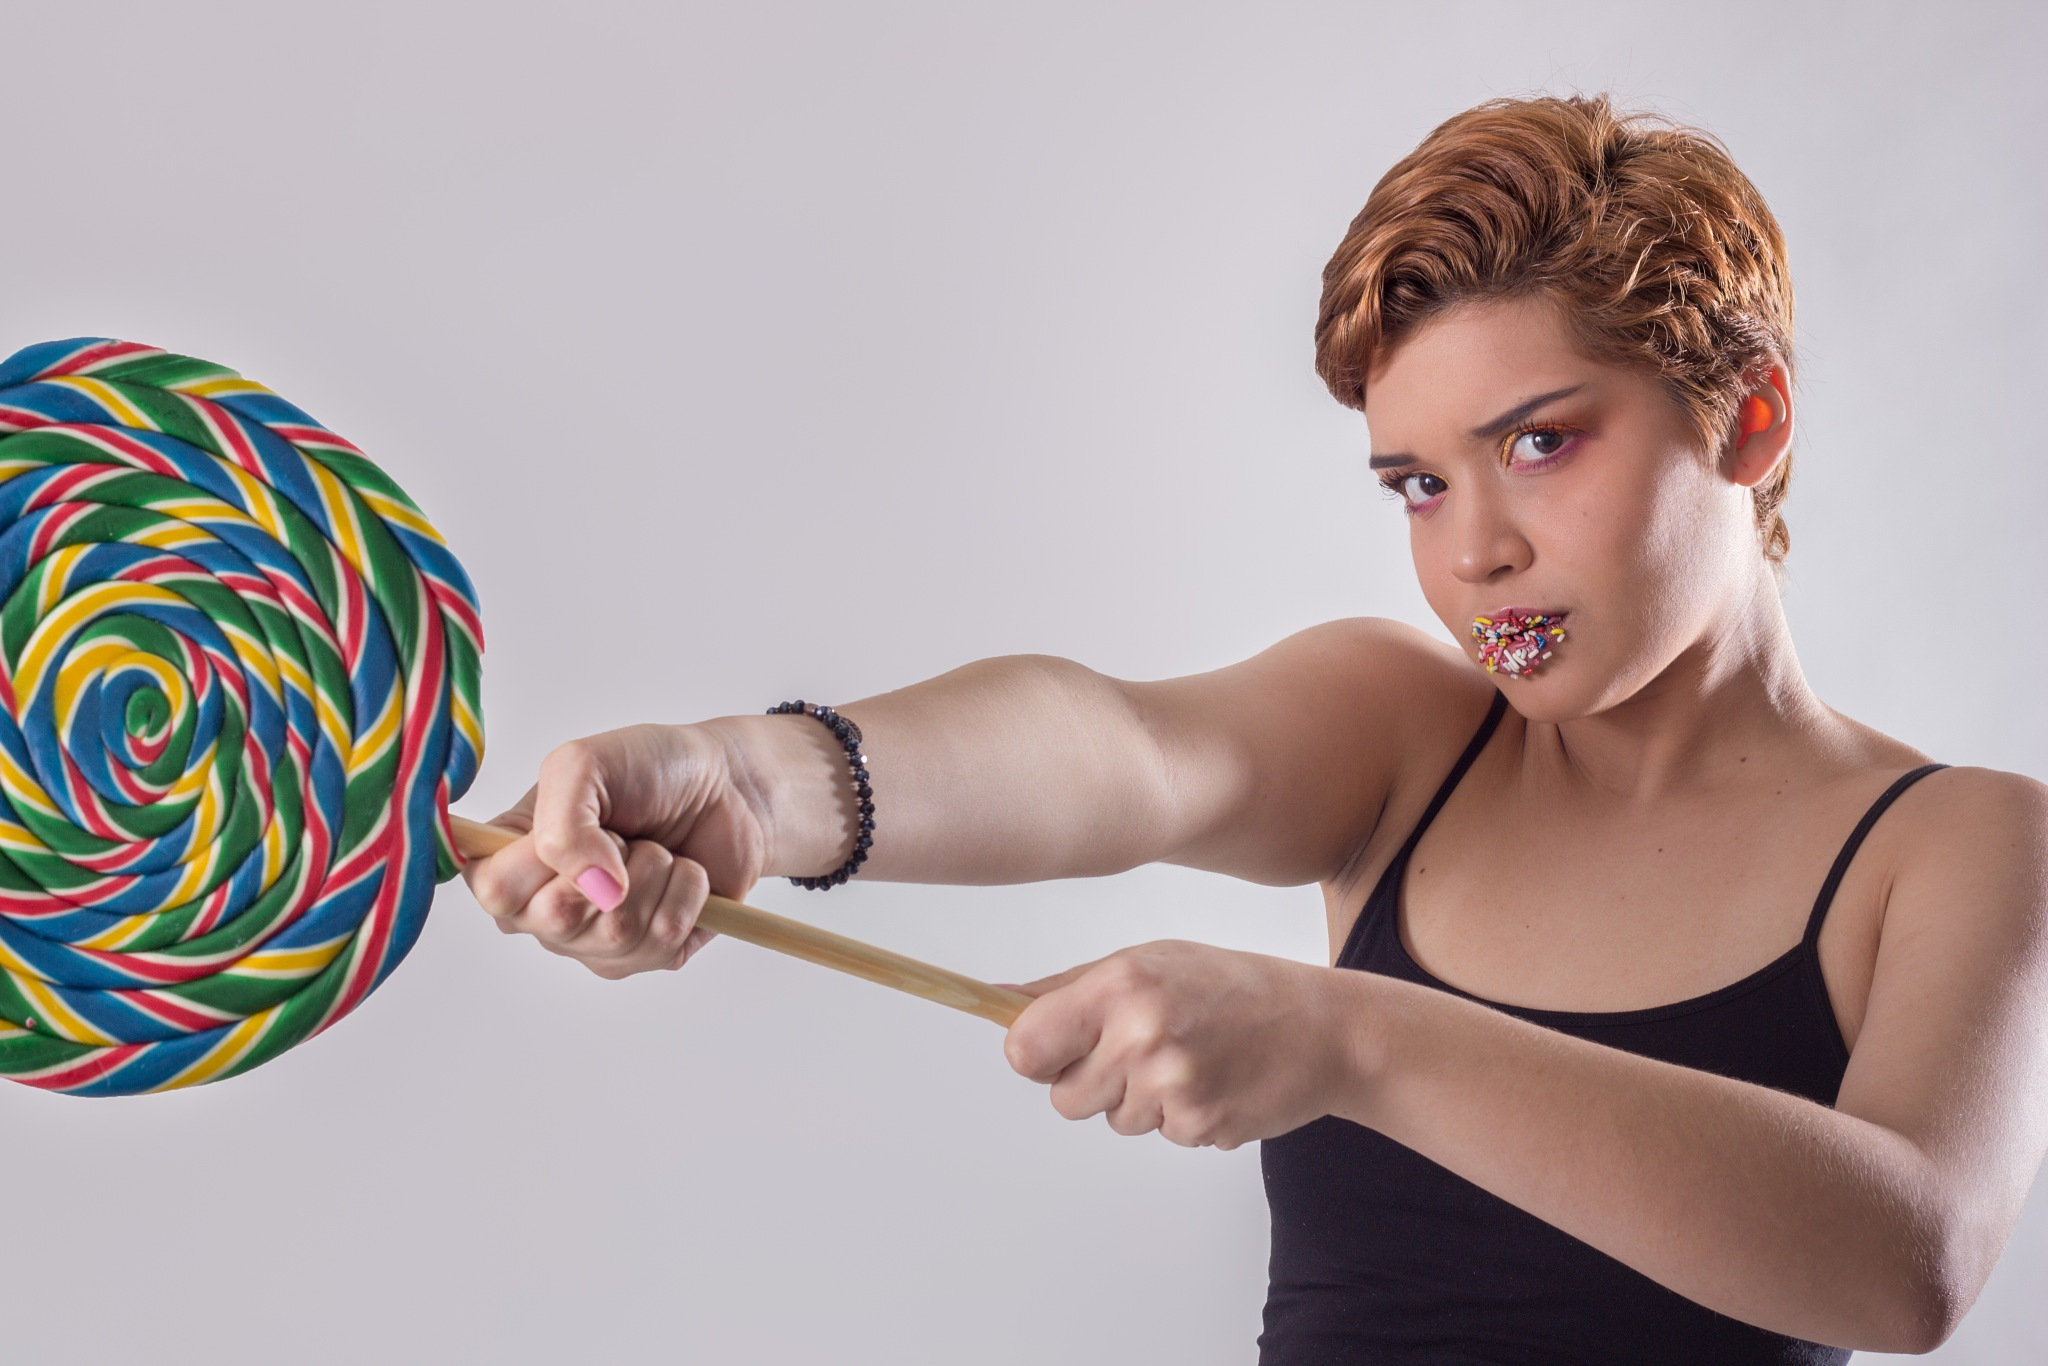 Girl using a candy as weapon by Tiago Deliberali Santos